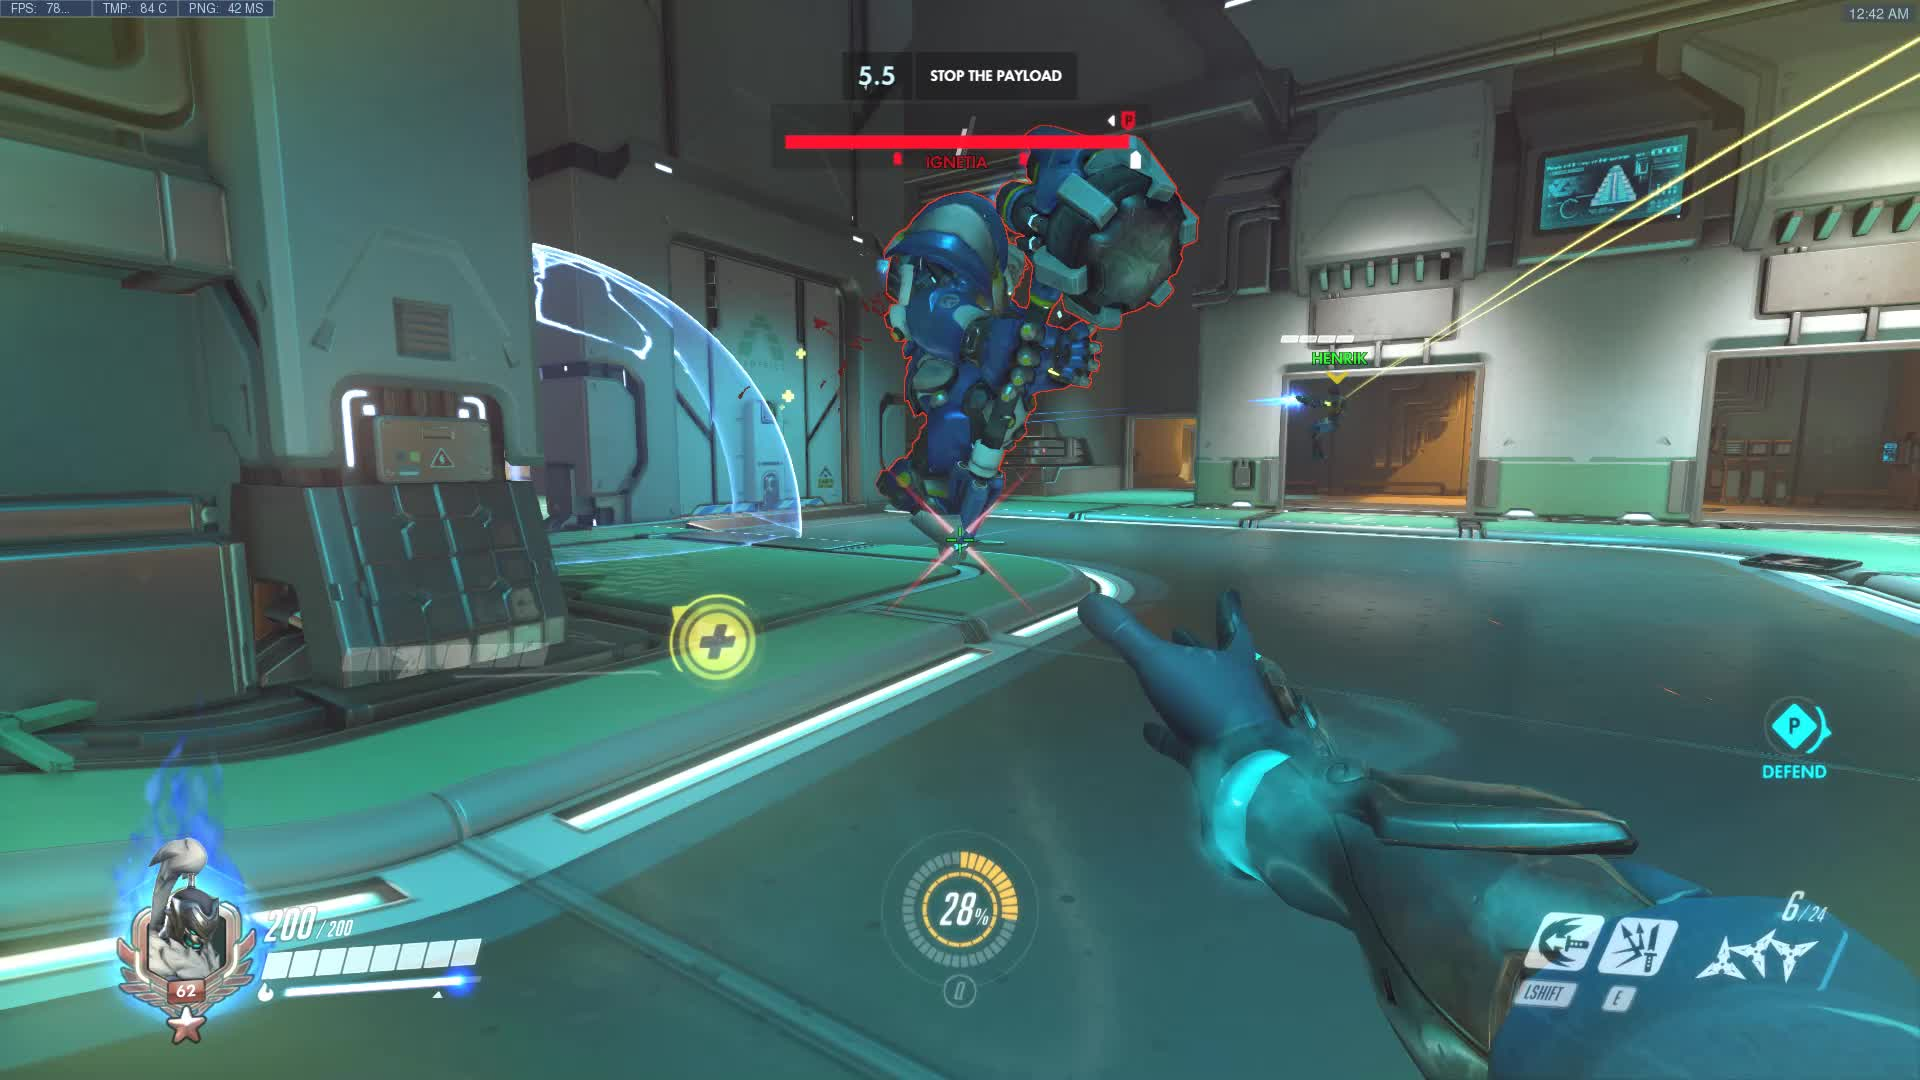 vlc-record-2018-03-10-00h48m28s-Overwatch 03.10.2018 - 00.42.52.04.DVR.mp4- GIFs